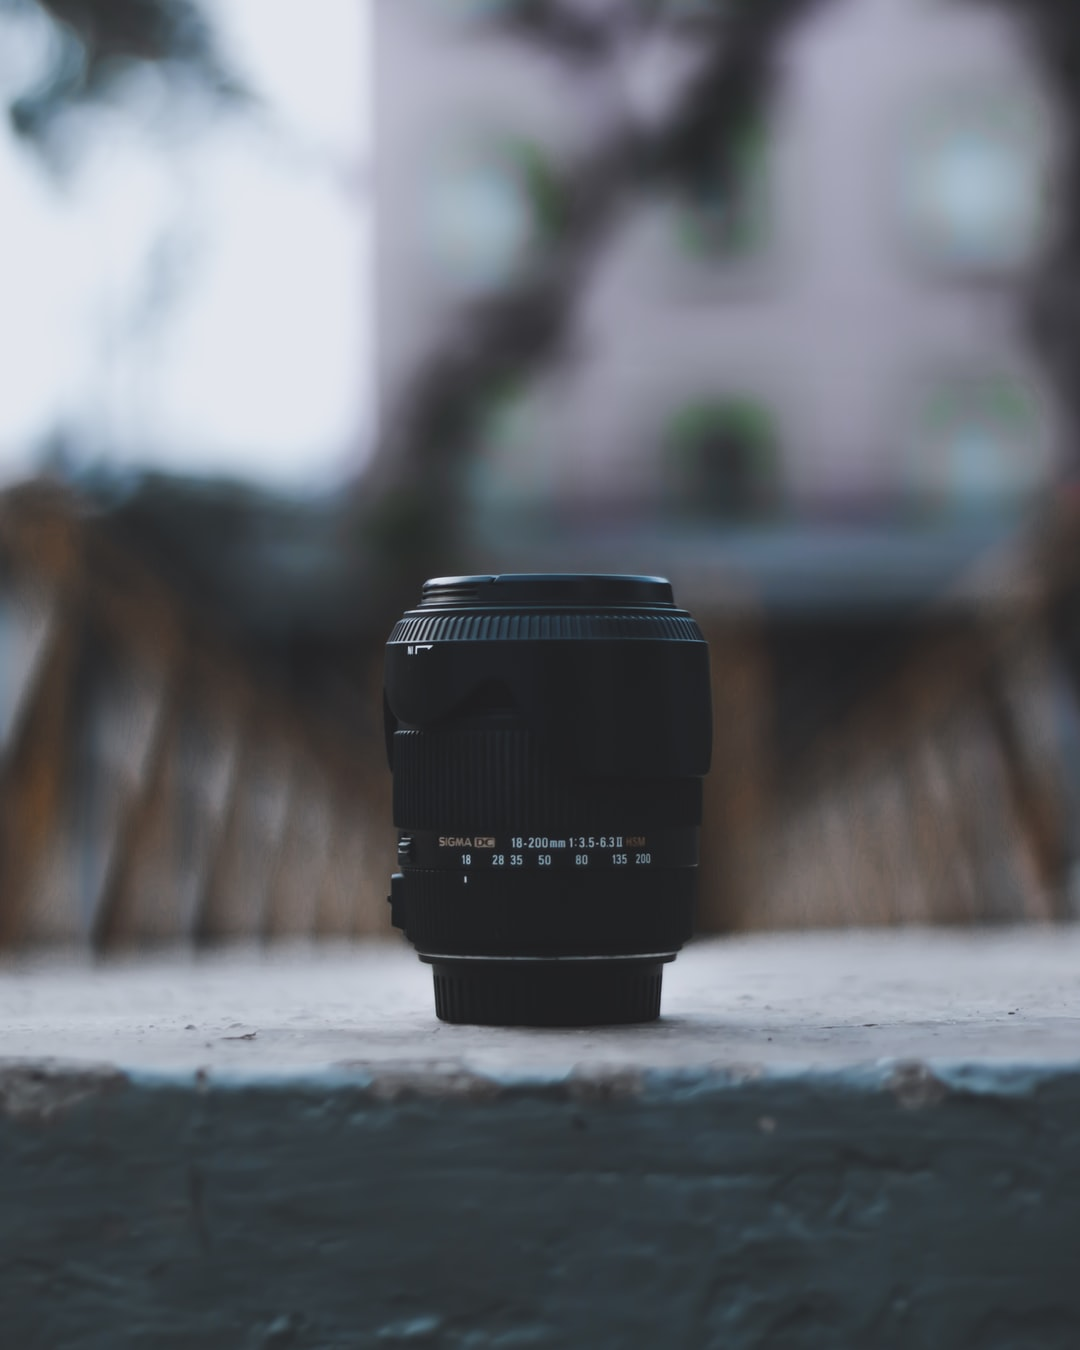 Just a lens